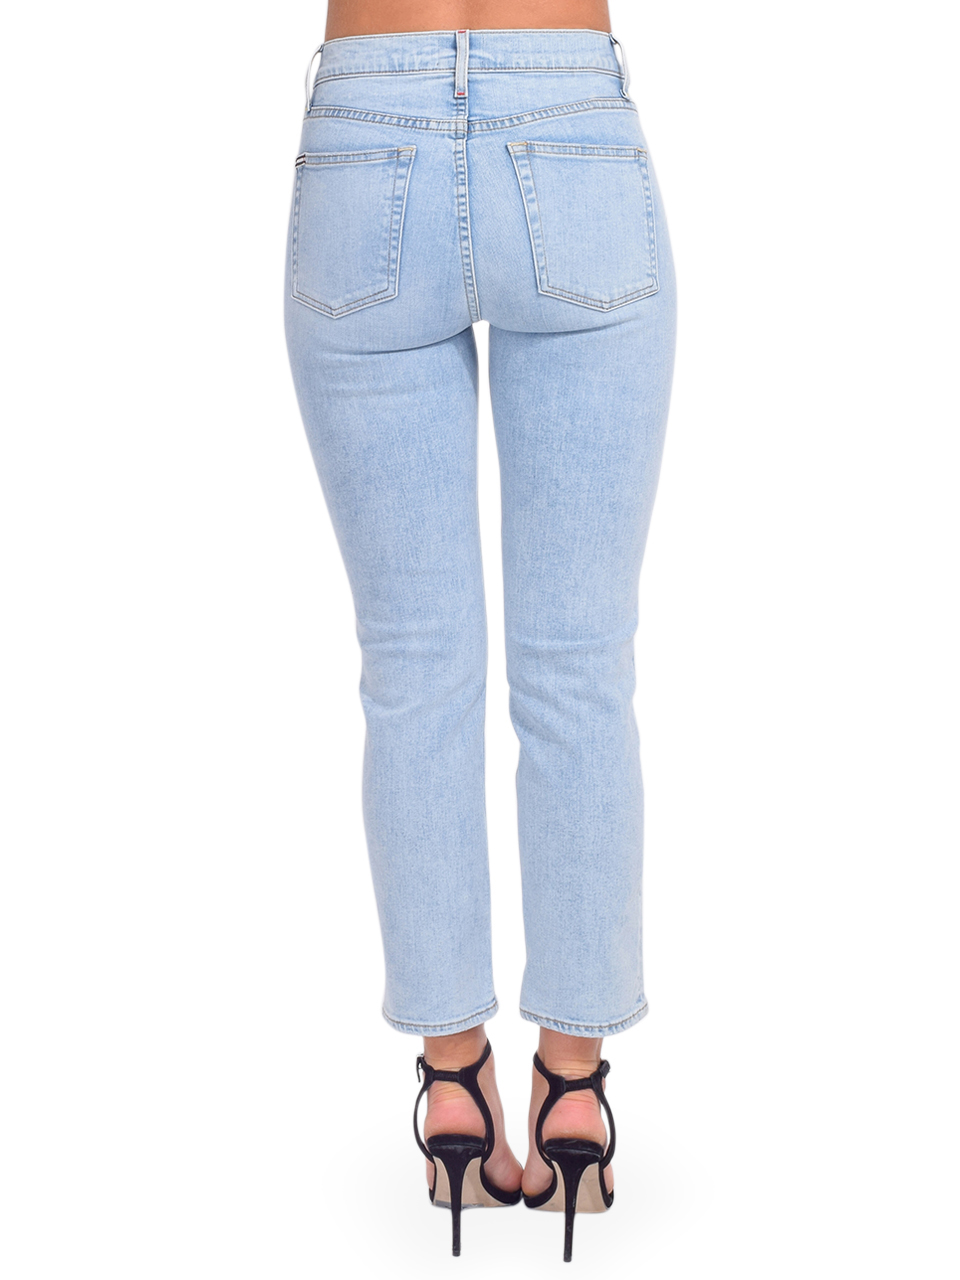 ALICE + OLIVIA Stunning High Rise Straight Leg in Baby Blues Back View